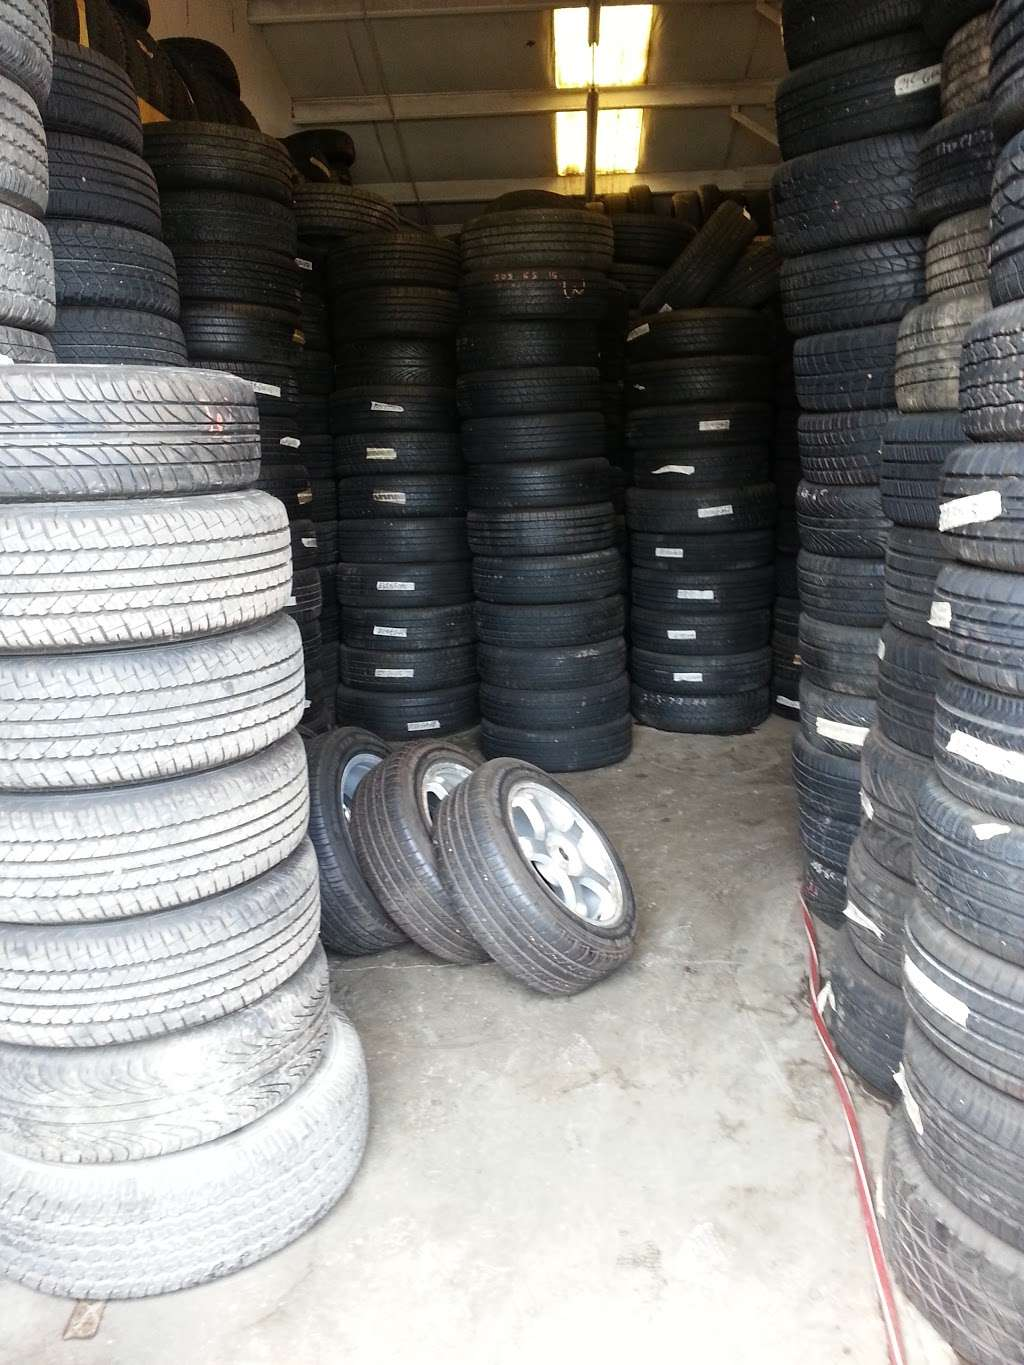 Used And New Tires Erasmo Pena - car repair  | Photo 6 of 10 | Address: 17499 Old Stage Coach Rd, Dumfries, VA 22026, USA | Phone: (571) 205-9575